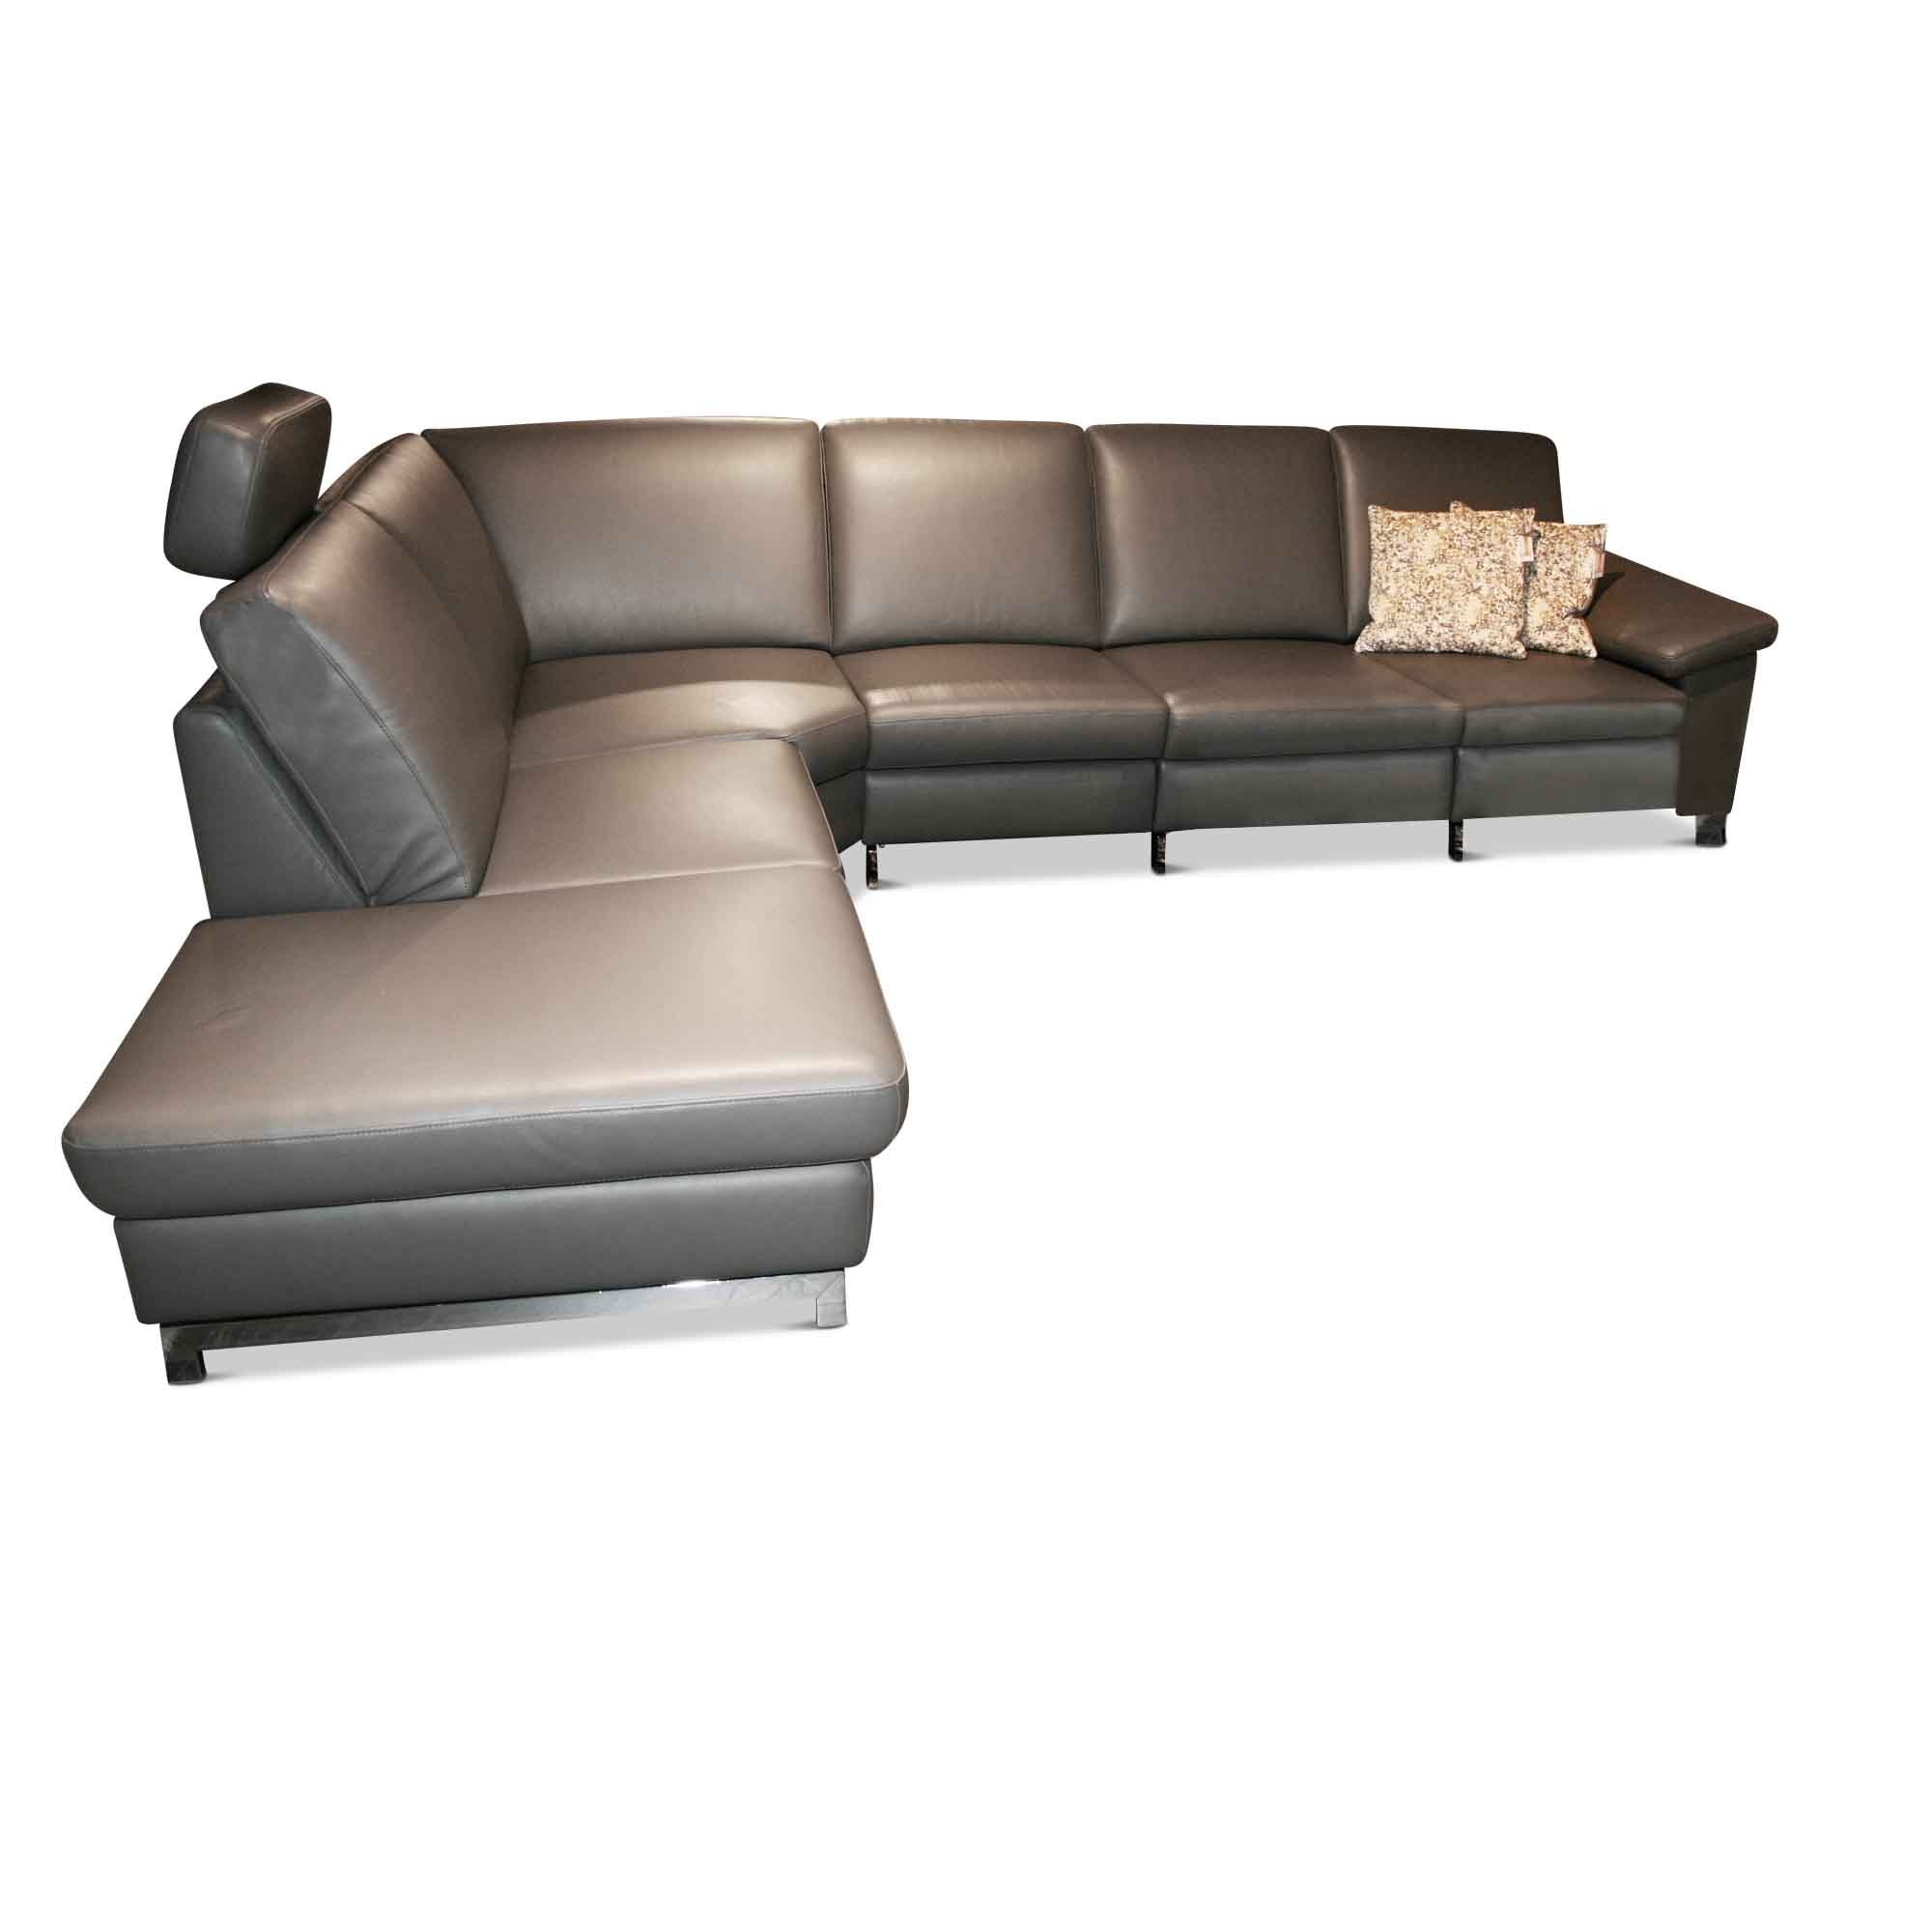 musterring designer ecksofa mr 2875 leder grau graphit 4060988000399 ebay. Black Bedroom Furniture Sets. Home Design Ideas